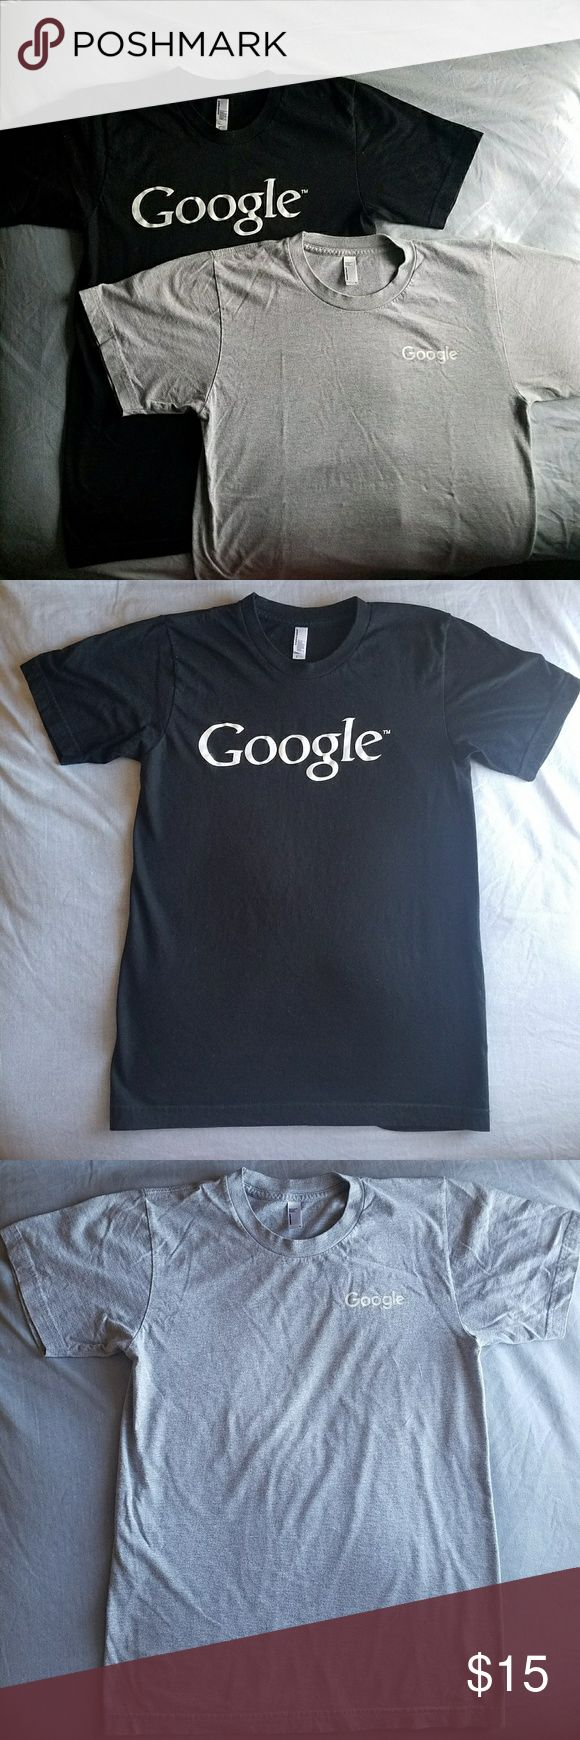 *Bundle Alert* Two Google T-shirts Size Small Selling two Google logo T-Shirts! The black shirt has large white print across the chest. The grey has small white print on the left chest.  Makes an awesome gift for the holidays!  Size Adult Small  T-shirts made by American Apparel  Purchased from the Google Store in Mountain View, California  Excellent condition. All offers are welcome!! American Apparel Shirts Tees - Short Sleeve